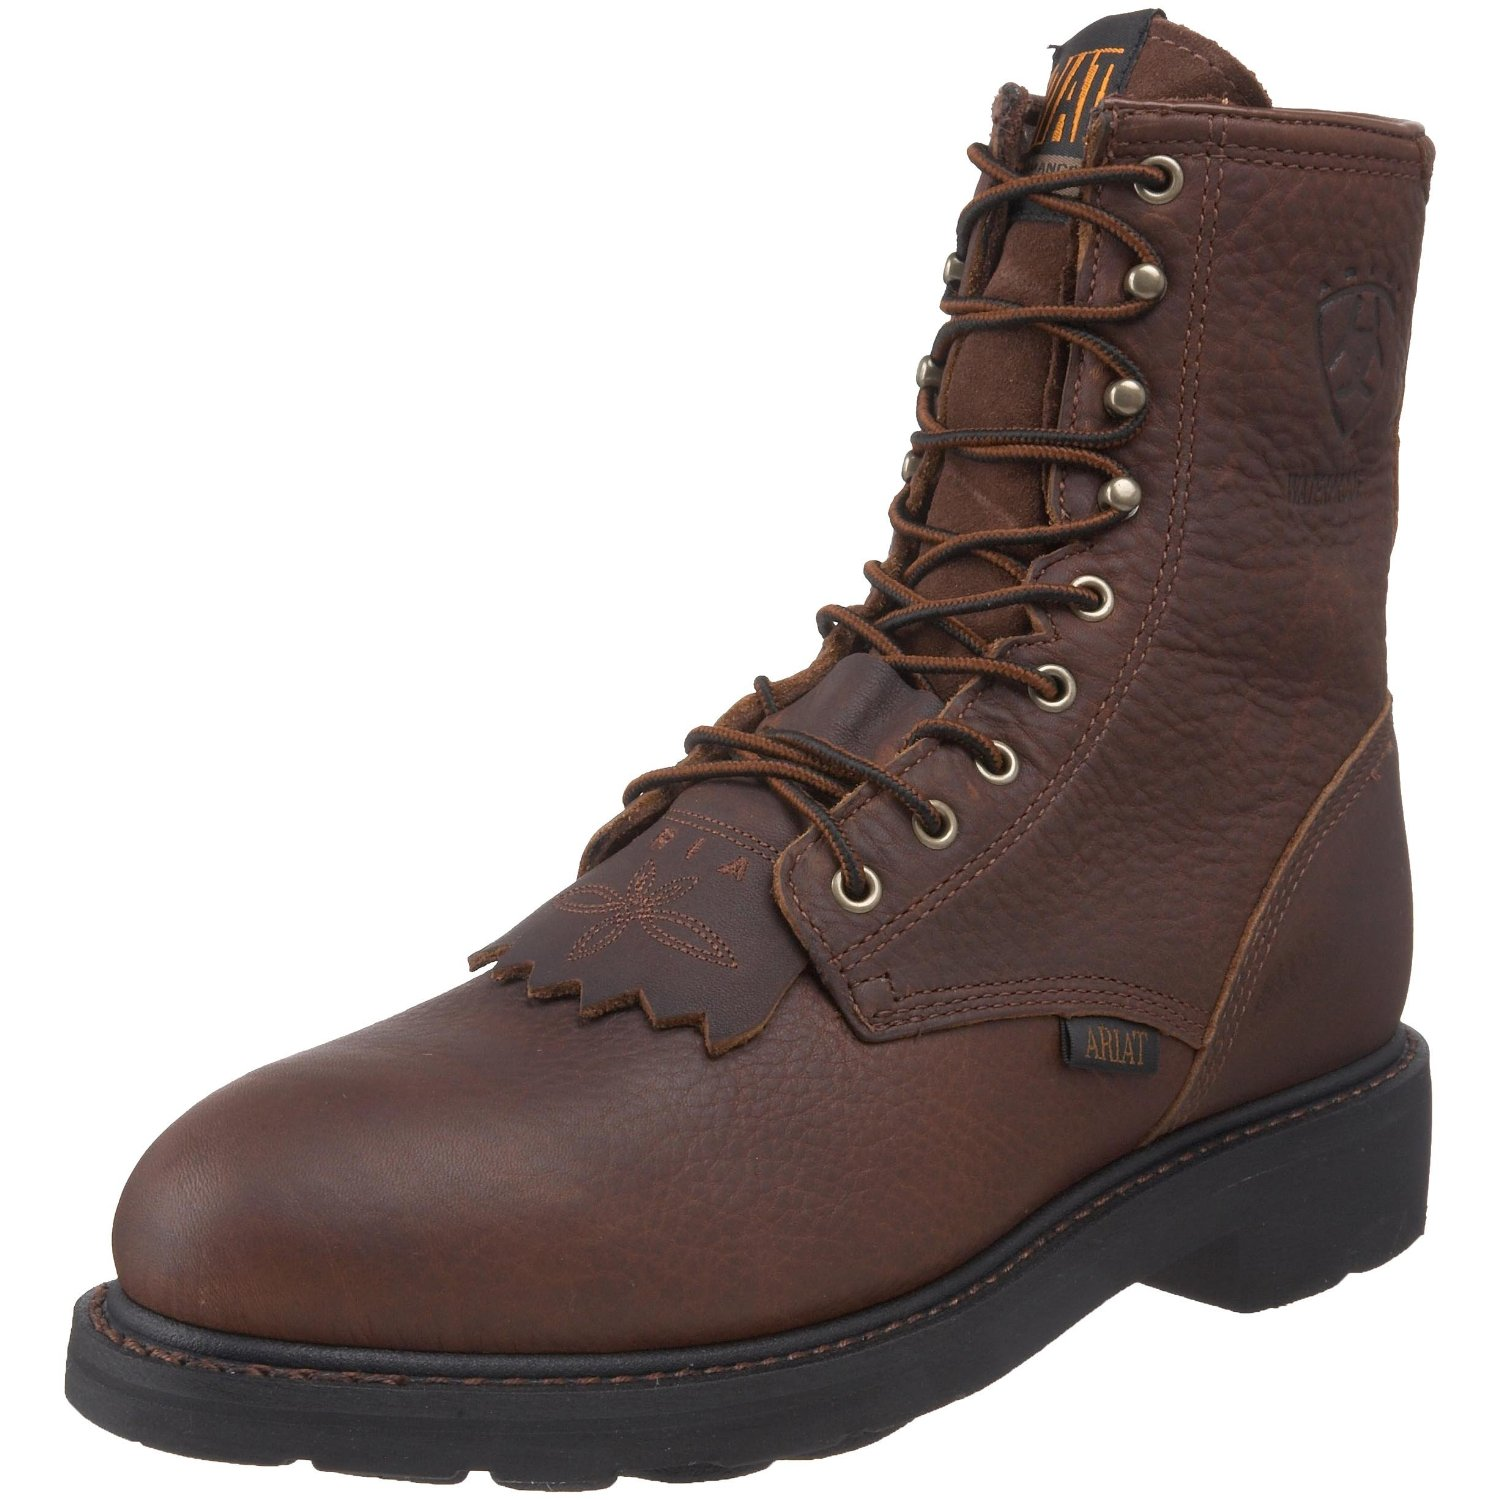 Lastest Ariat Mens 8 Inch Workhog Lace Up Boots